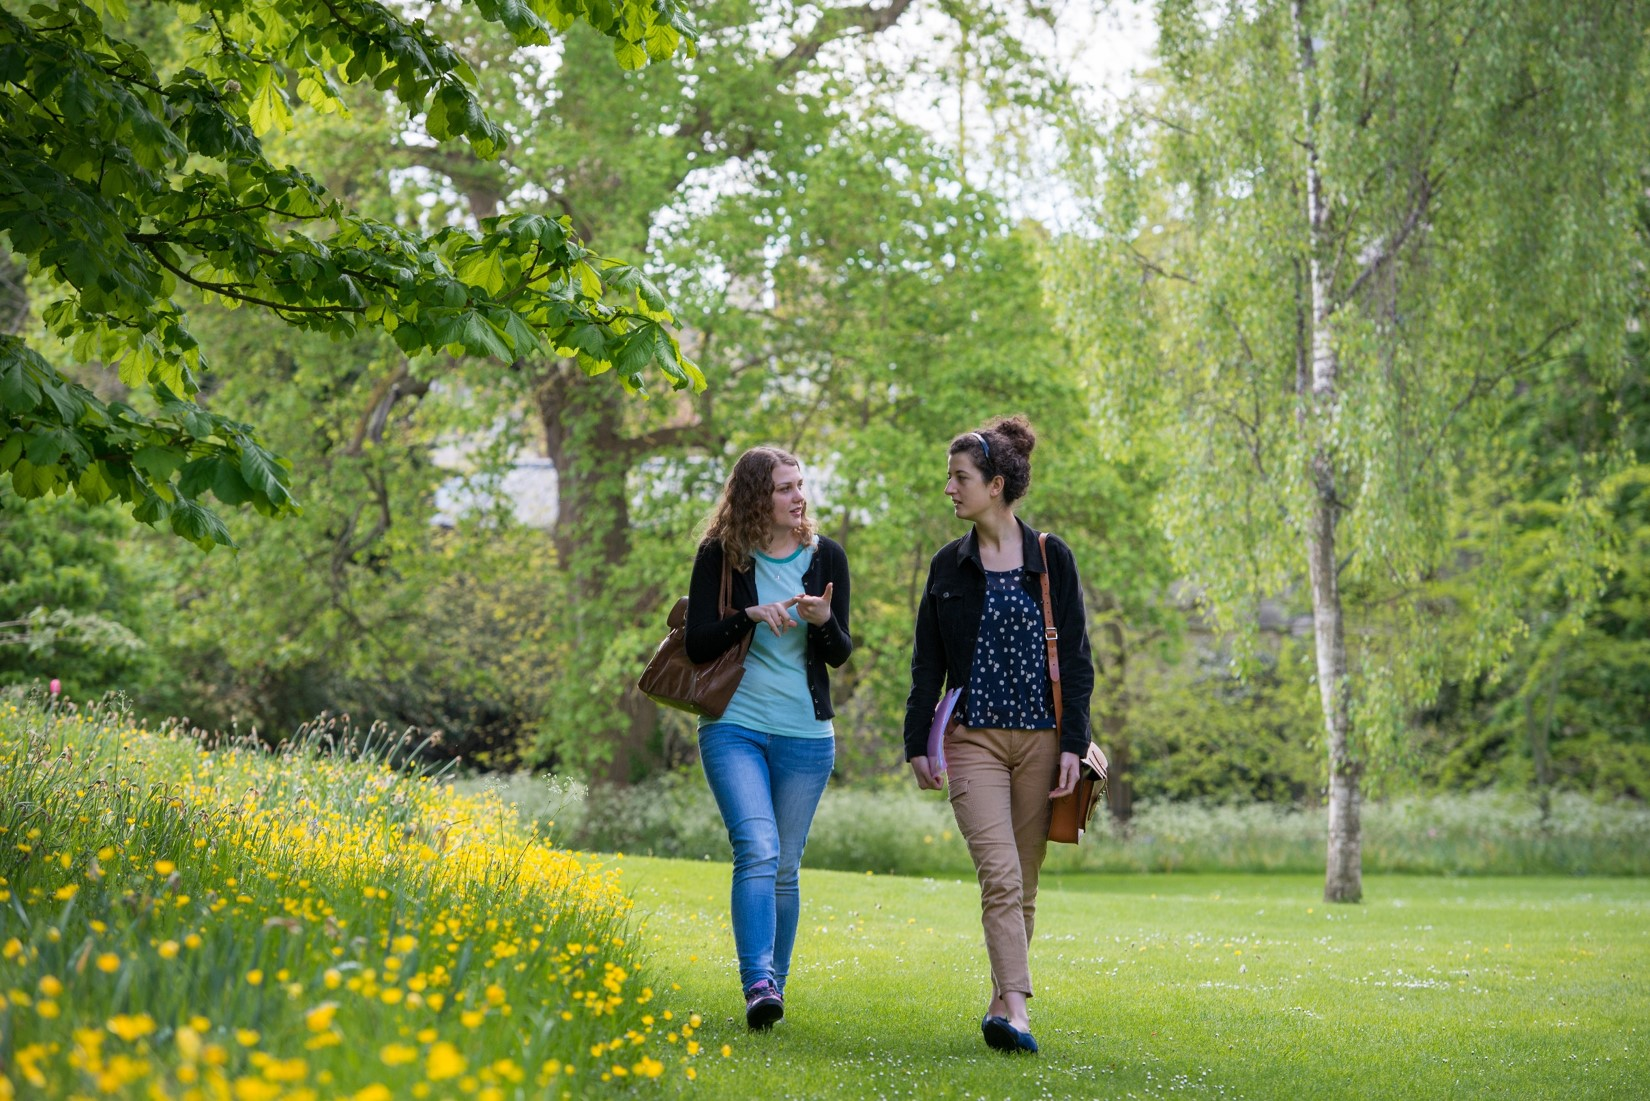 Students walking in the gardens